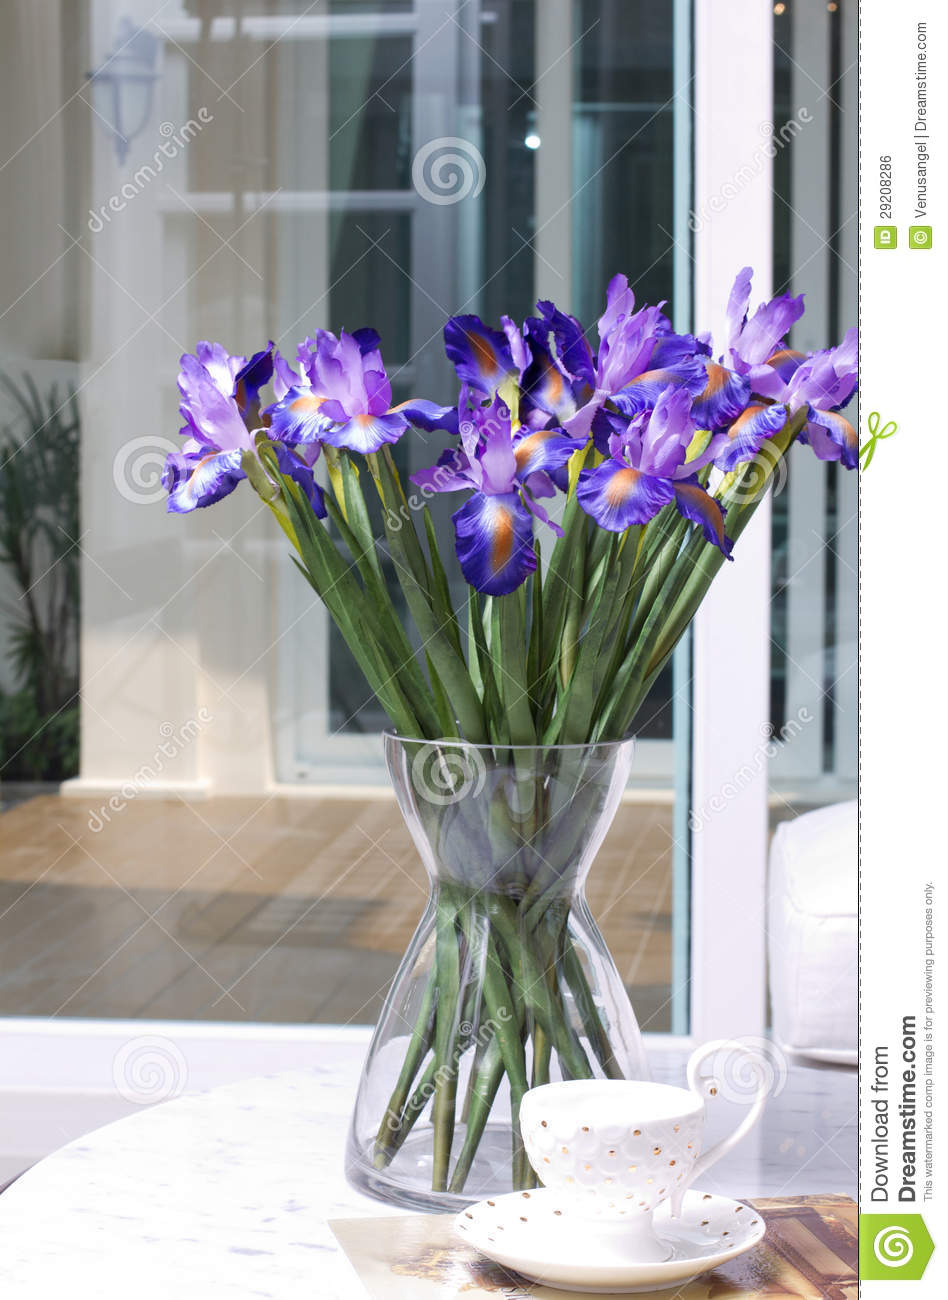 Artificial Iris Flowers In A Glass Vase Royalty Free Stock